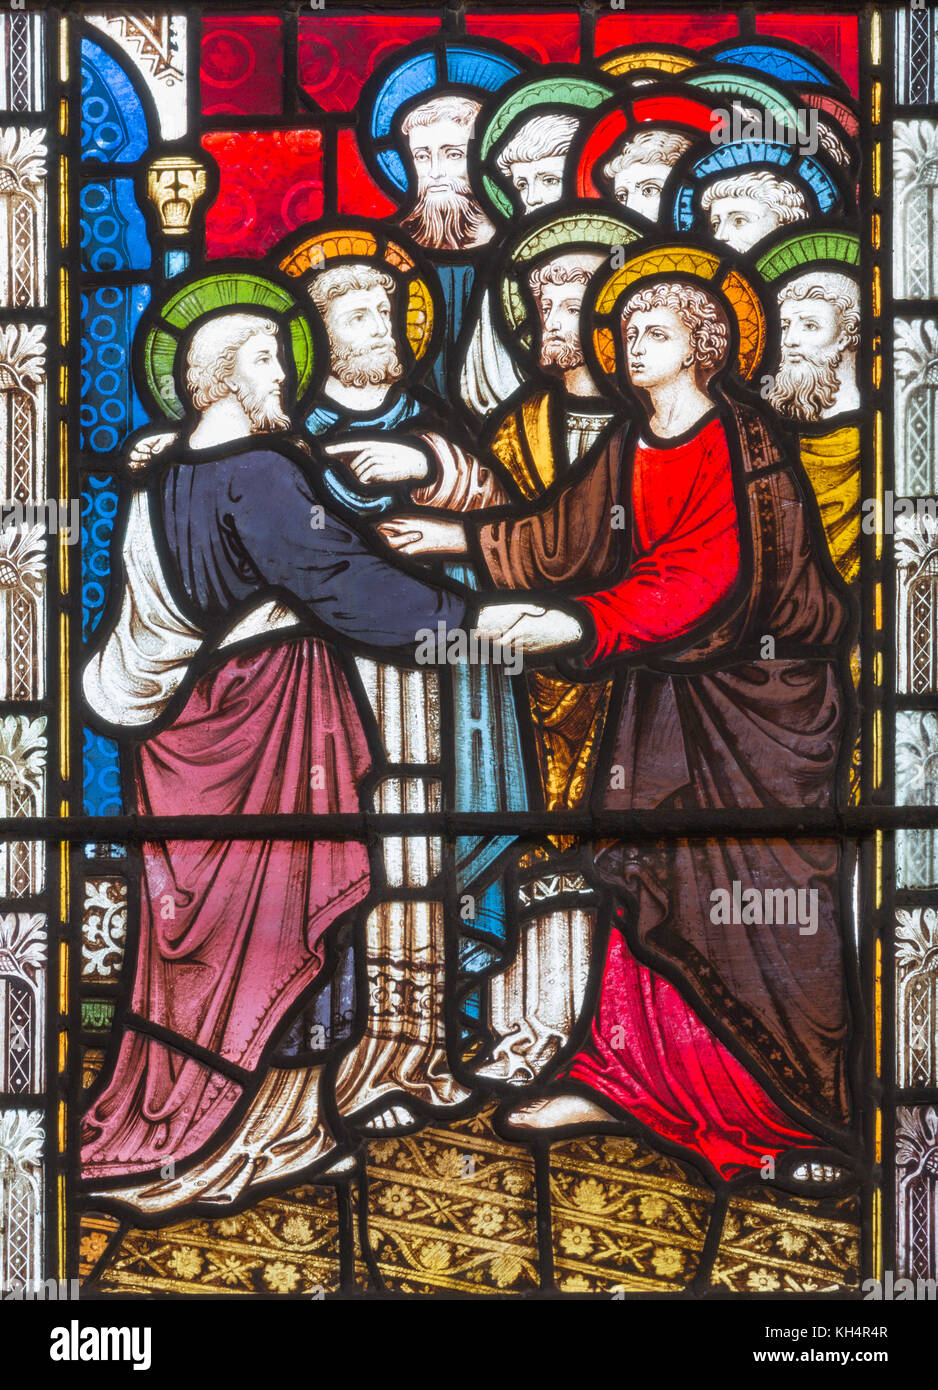 LONDON, GREAT BRITAIN - SEPTEMBER 19, 2017: The St. Paul anong the Apostles on the stained glass in St Mary Abbot's - Stock Image